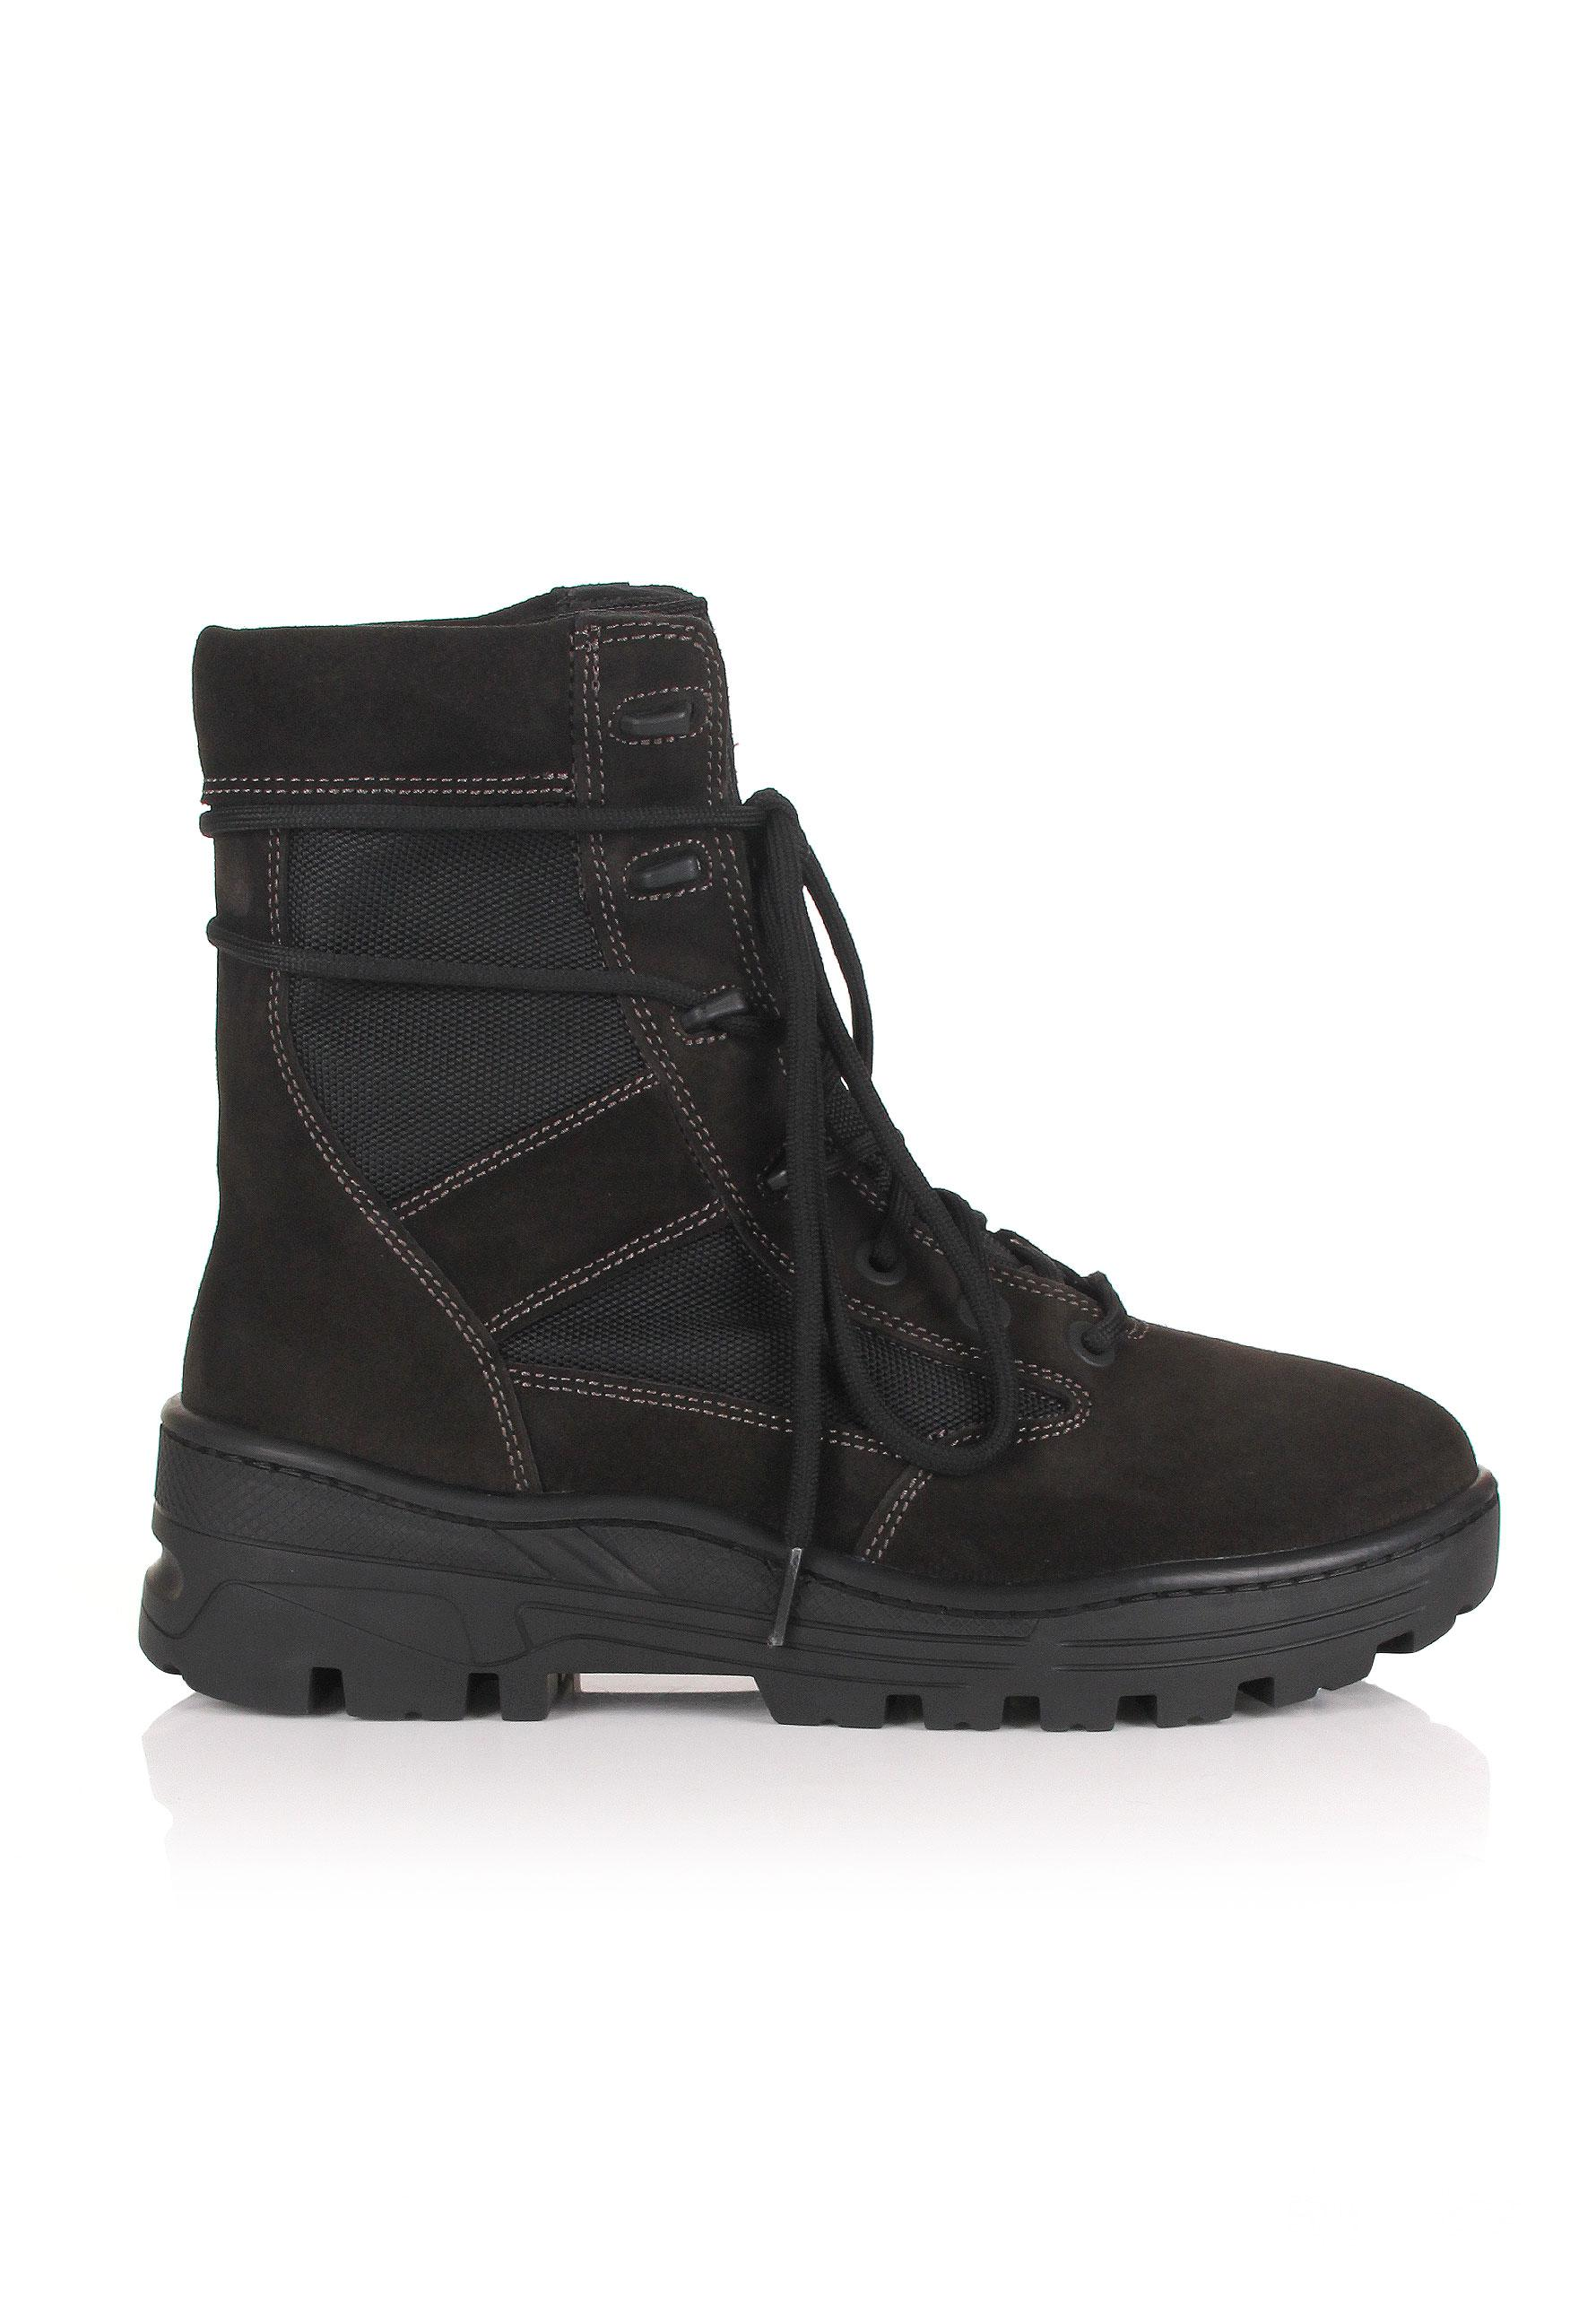 a64e0dc772e75 Yeezy Boots Season 4 - Best Picture Of Boot Imageco.Org